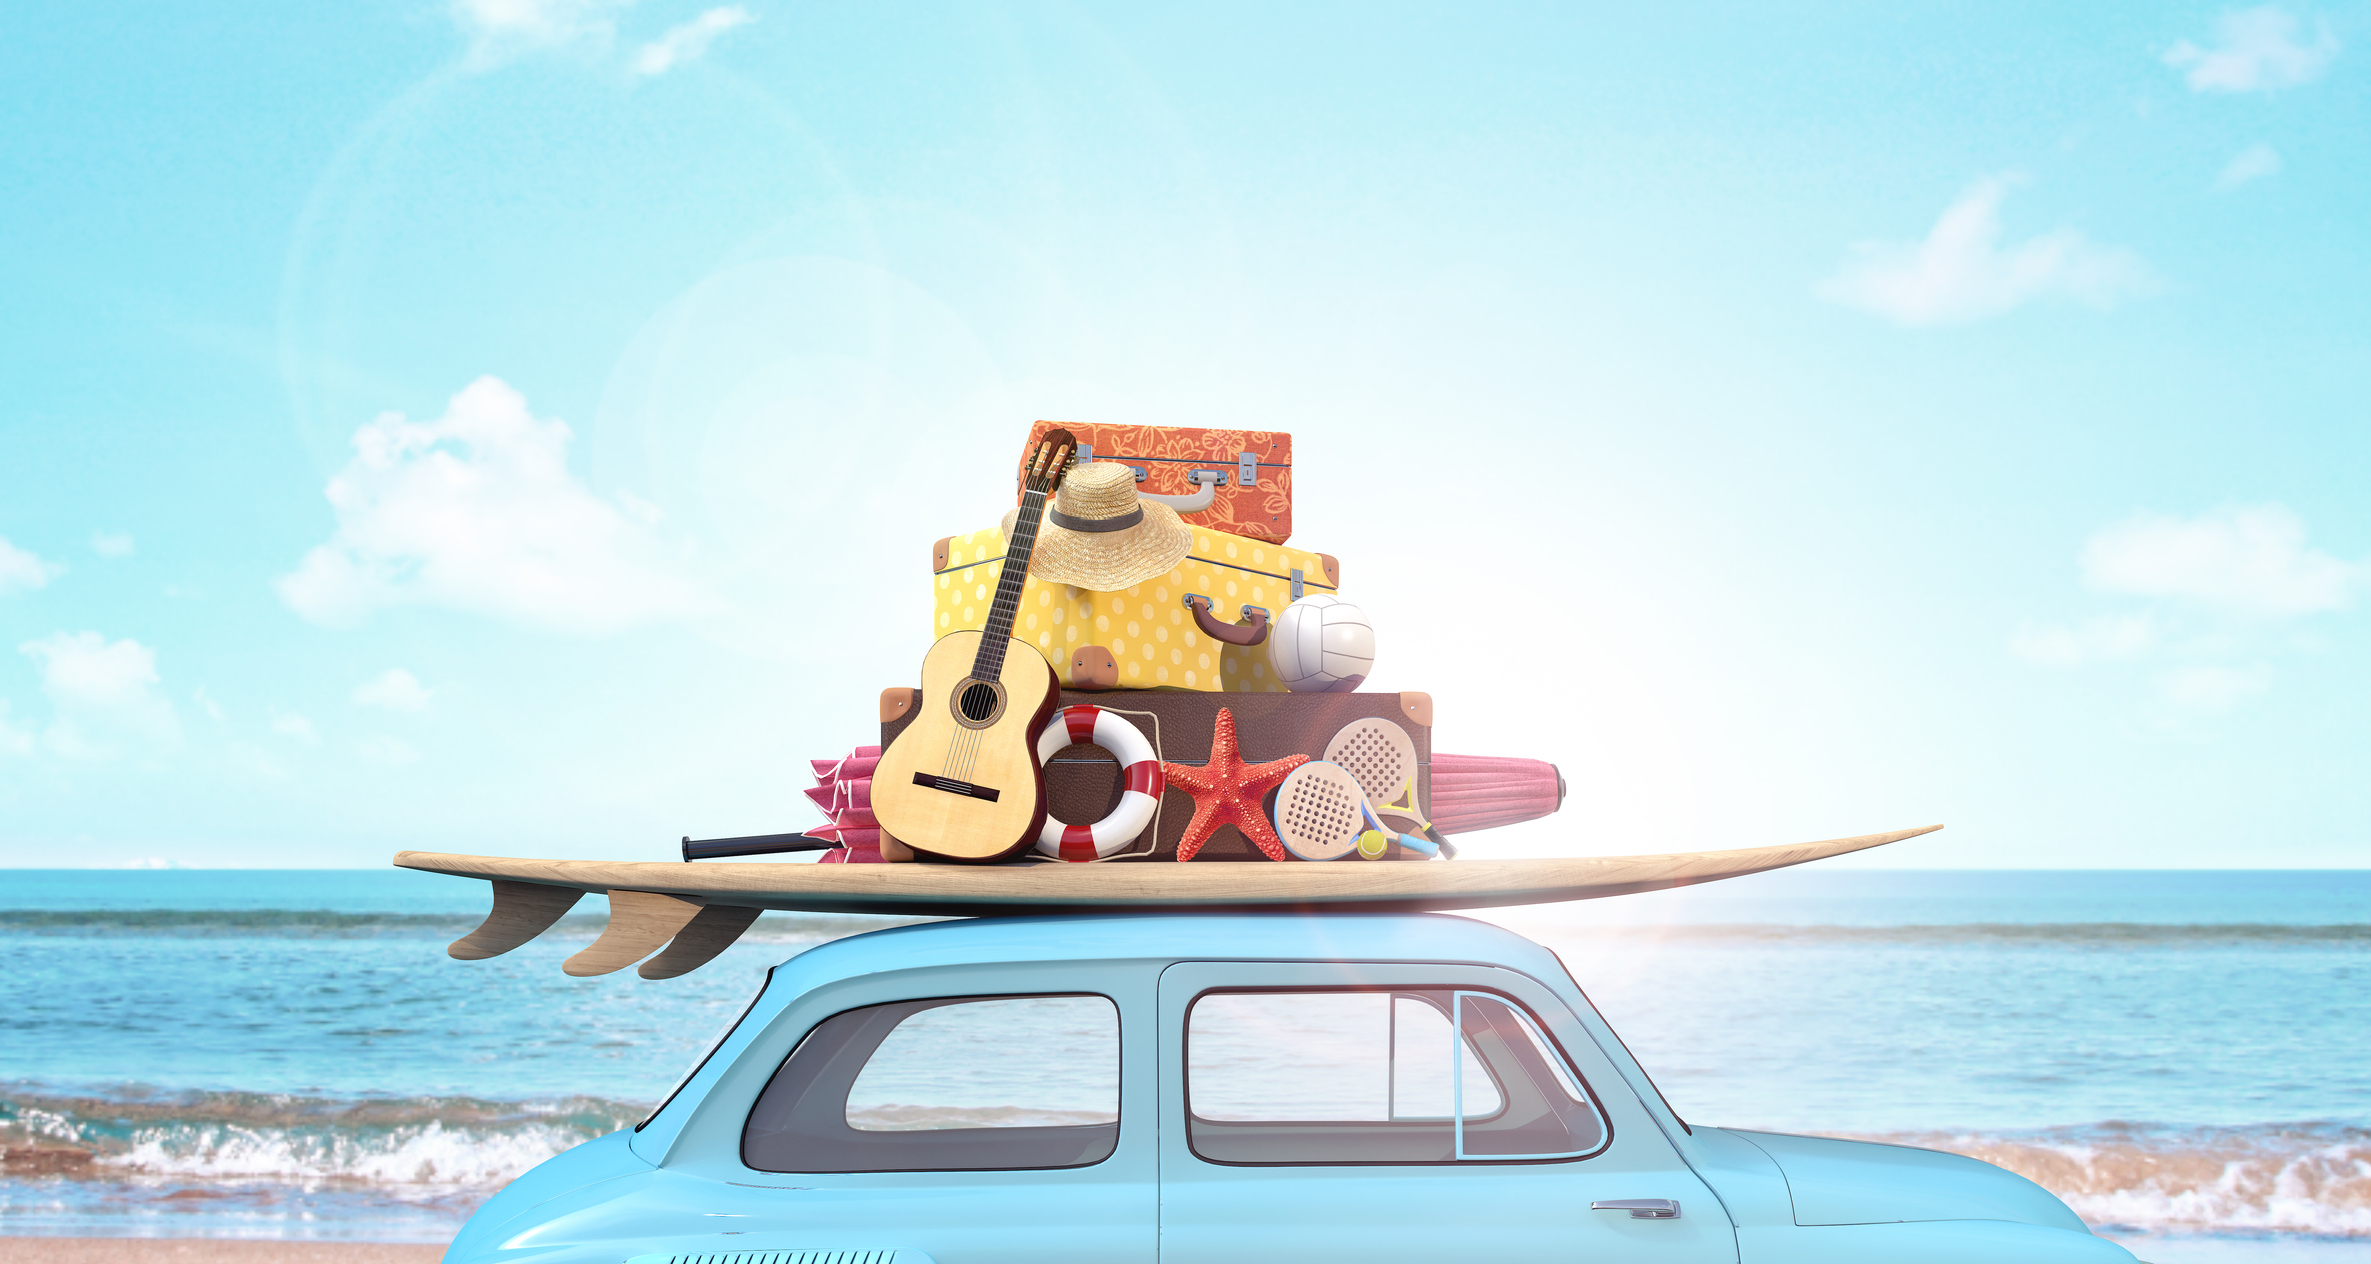 Car with luggage on the roof ready for summer vacation.